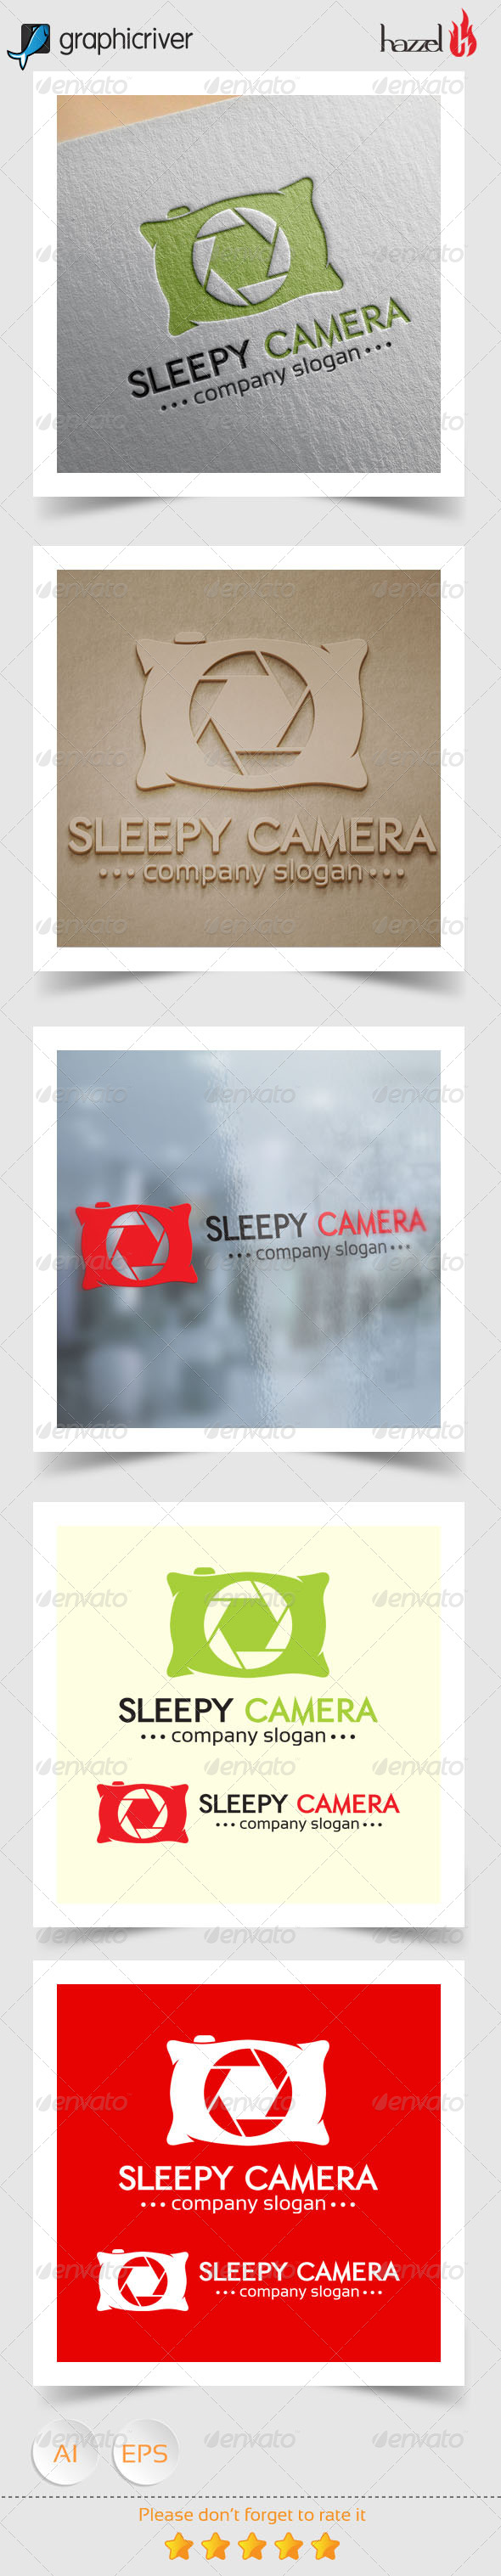 GraphicRiver Sleepy Camera Logo 8343662